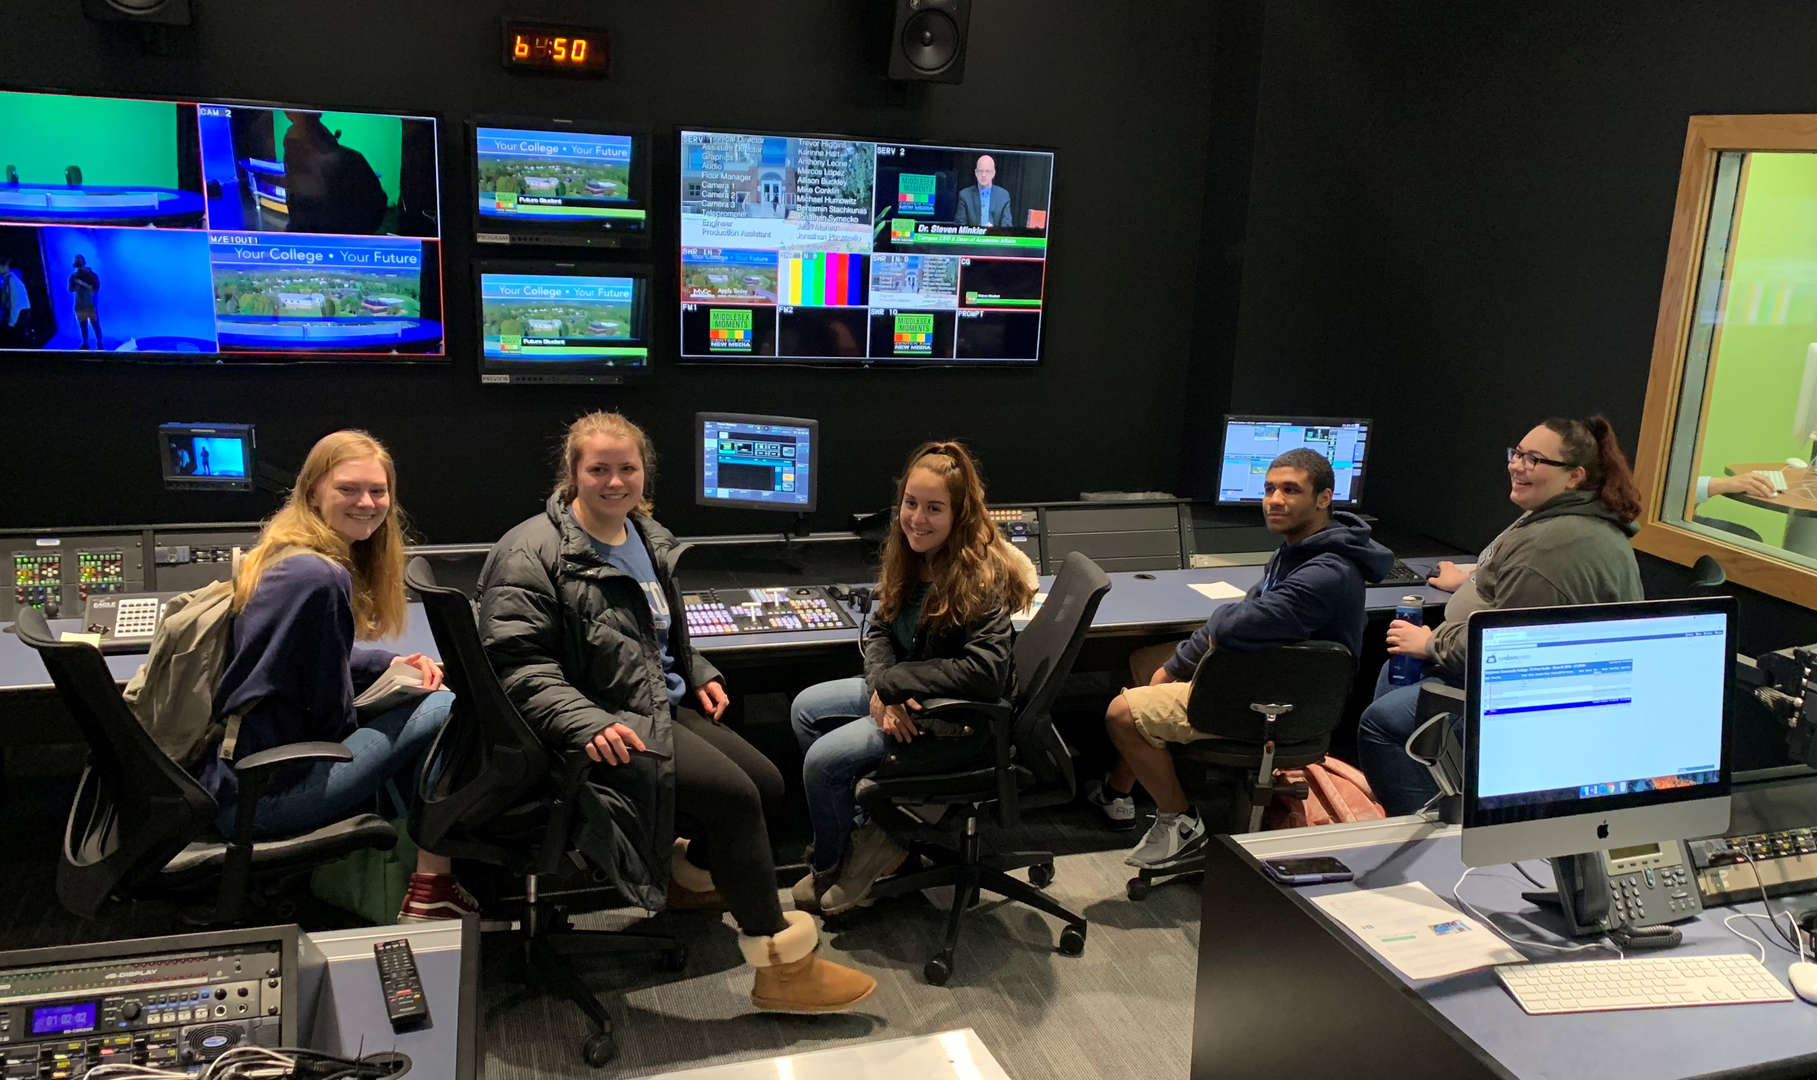 Students in a control booth